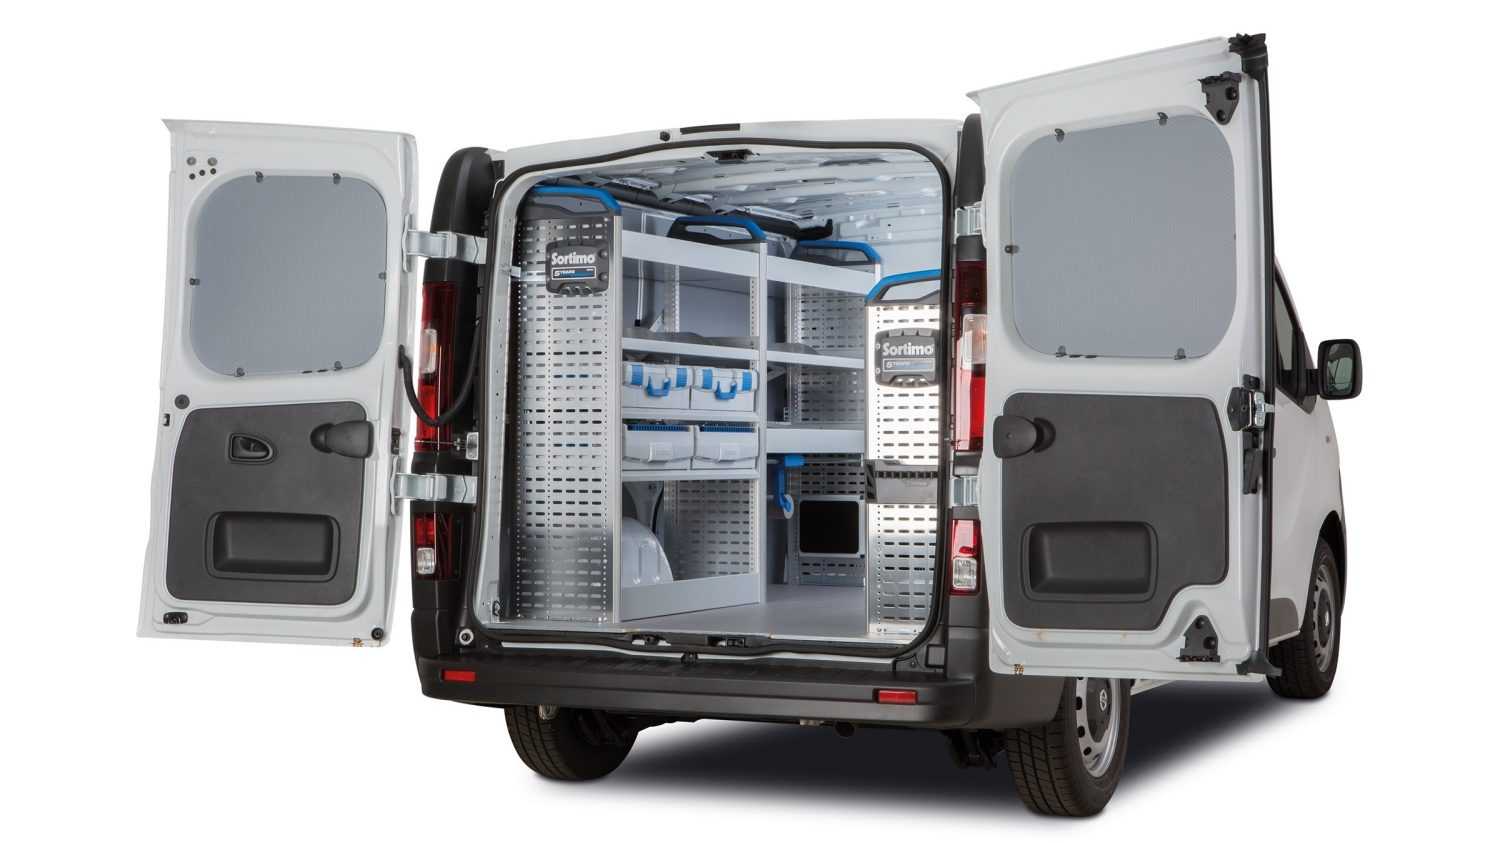 NV300 OVERVIEW - MOBILE WORKSHOP ELECTRICIAN PACKSHOT